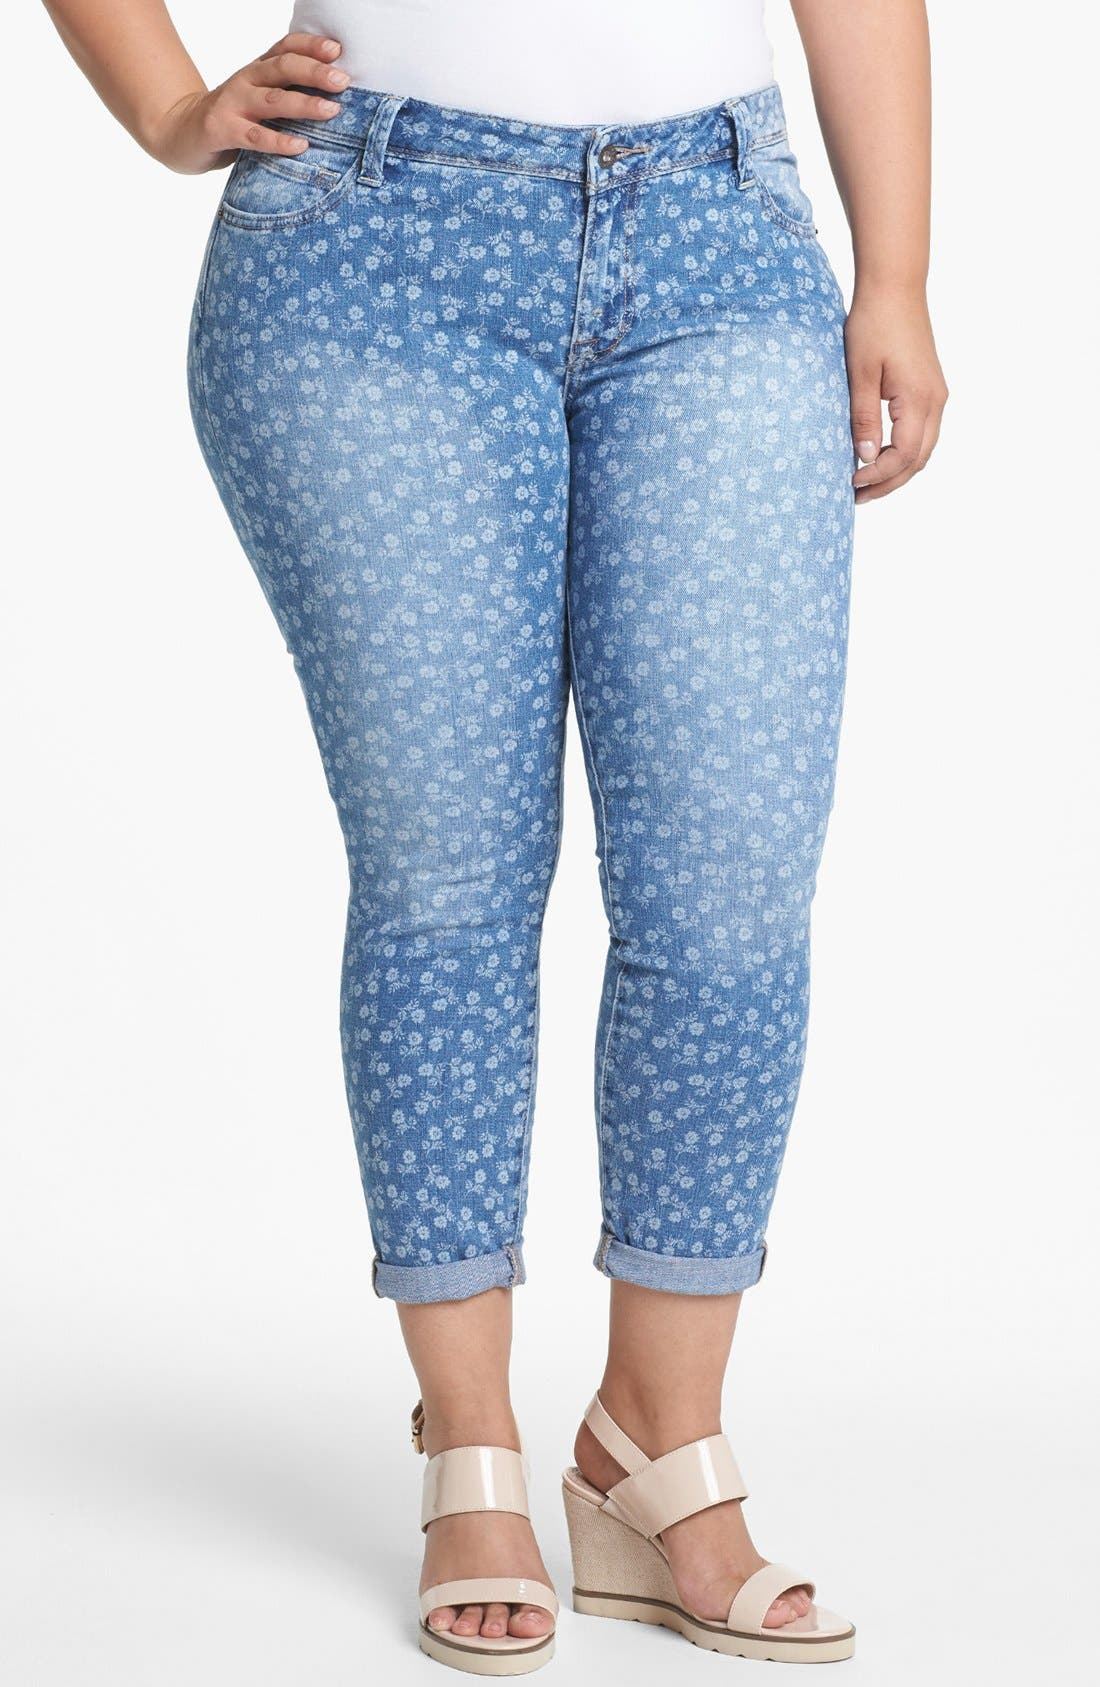 Main Image - Lucky Brand 'Ginger' Print Boyfriend Jeans (Plus Size)